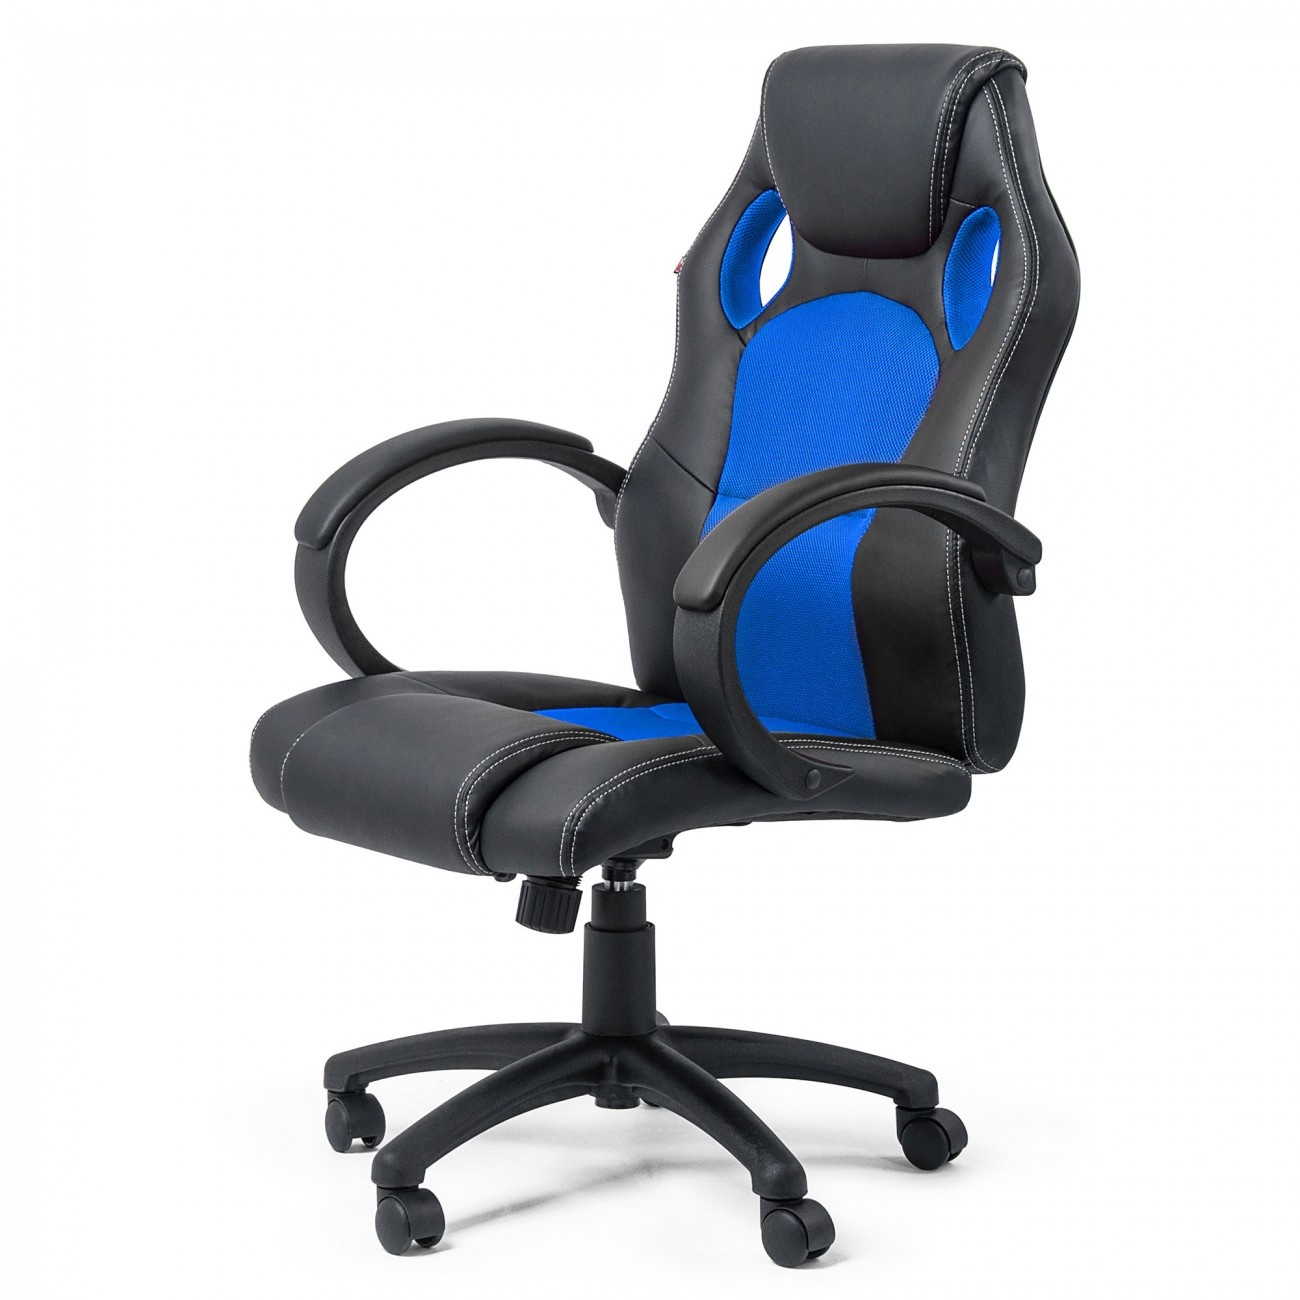 chaise bureau fauteuil si ge racing gamer sportiv. Black Bedroom Furniture Sets. Home Design Ideas